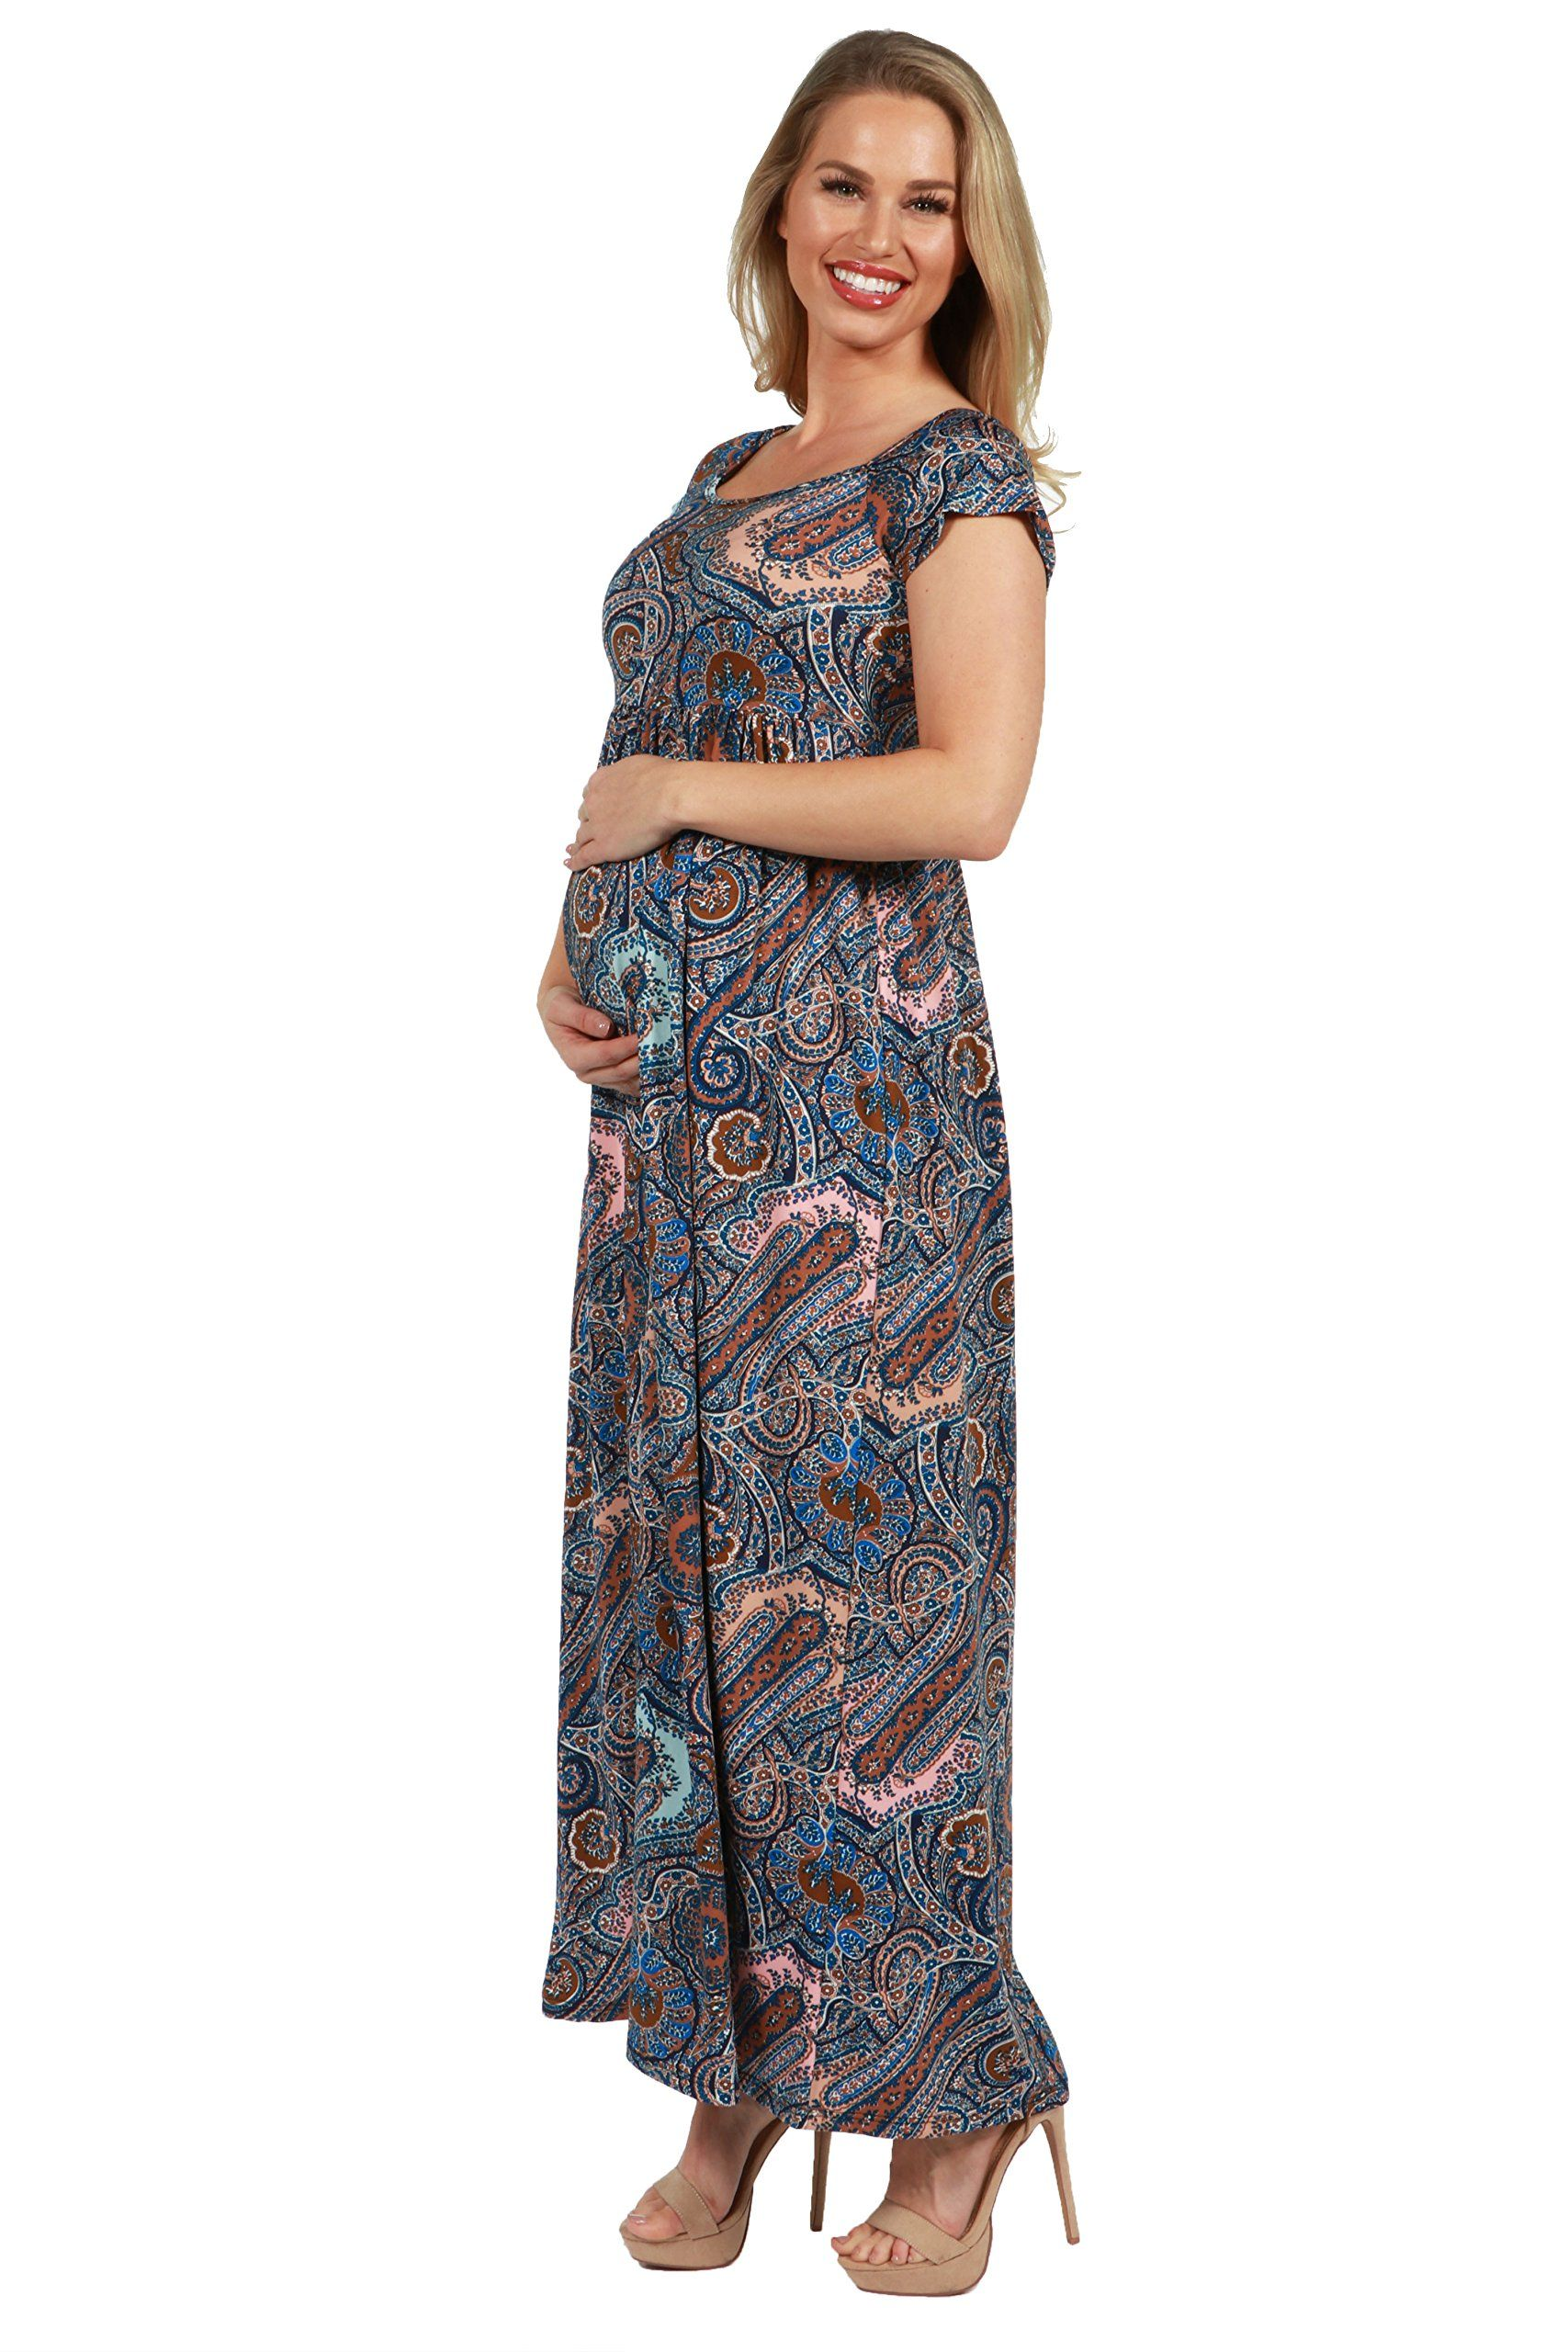 40933fe85c0cc Maternity Styles - best maternity dresses : 24/7 Comfort Apparel Maternity  Maxi Dress Emilia